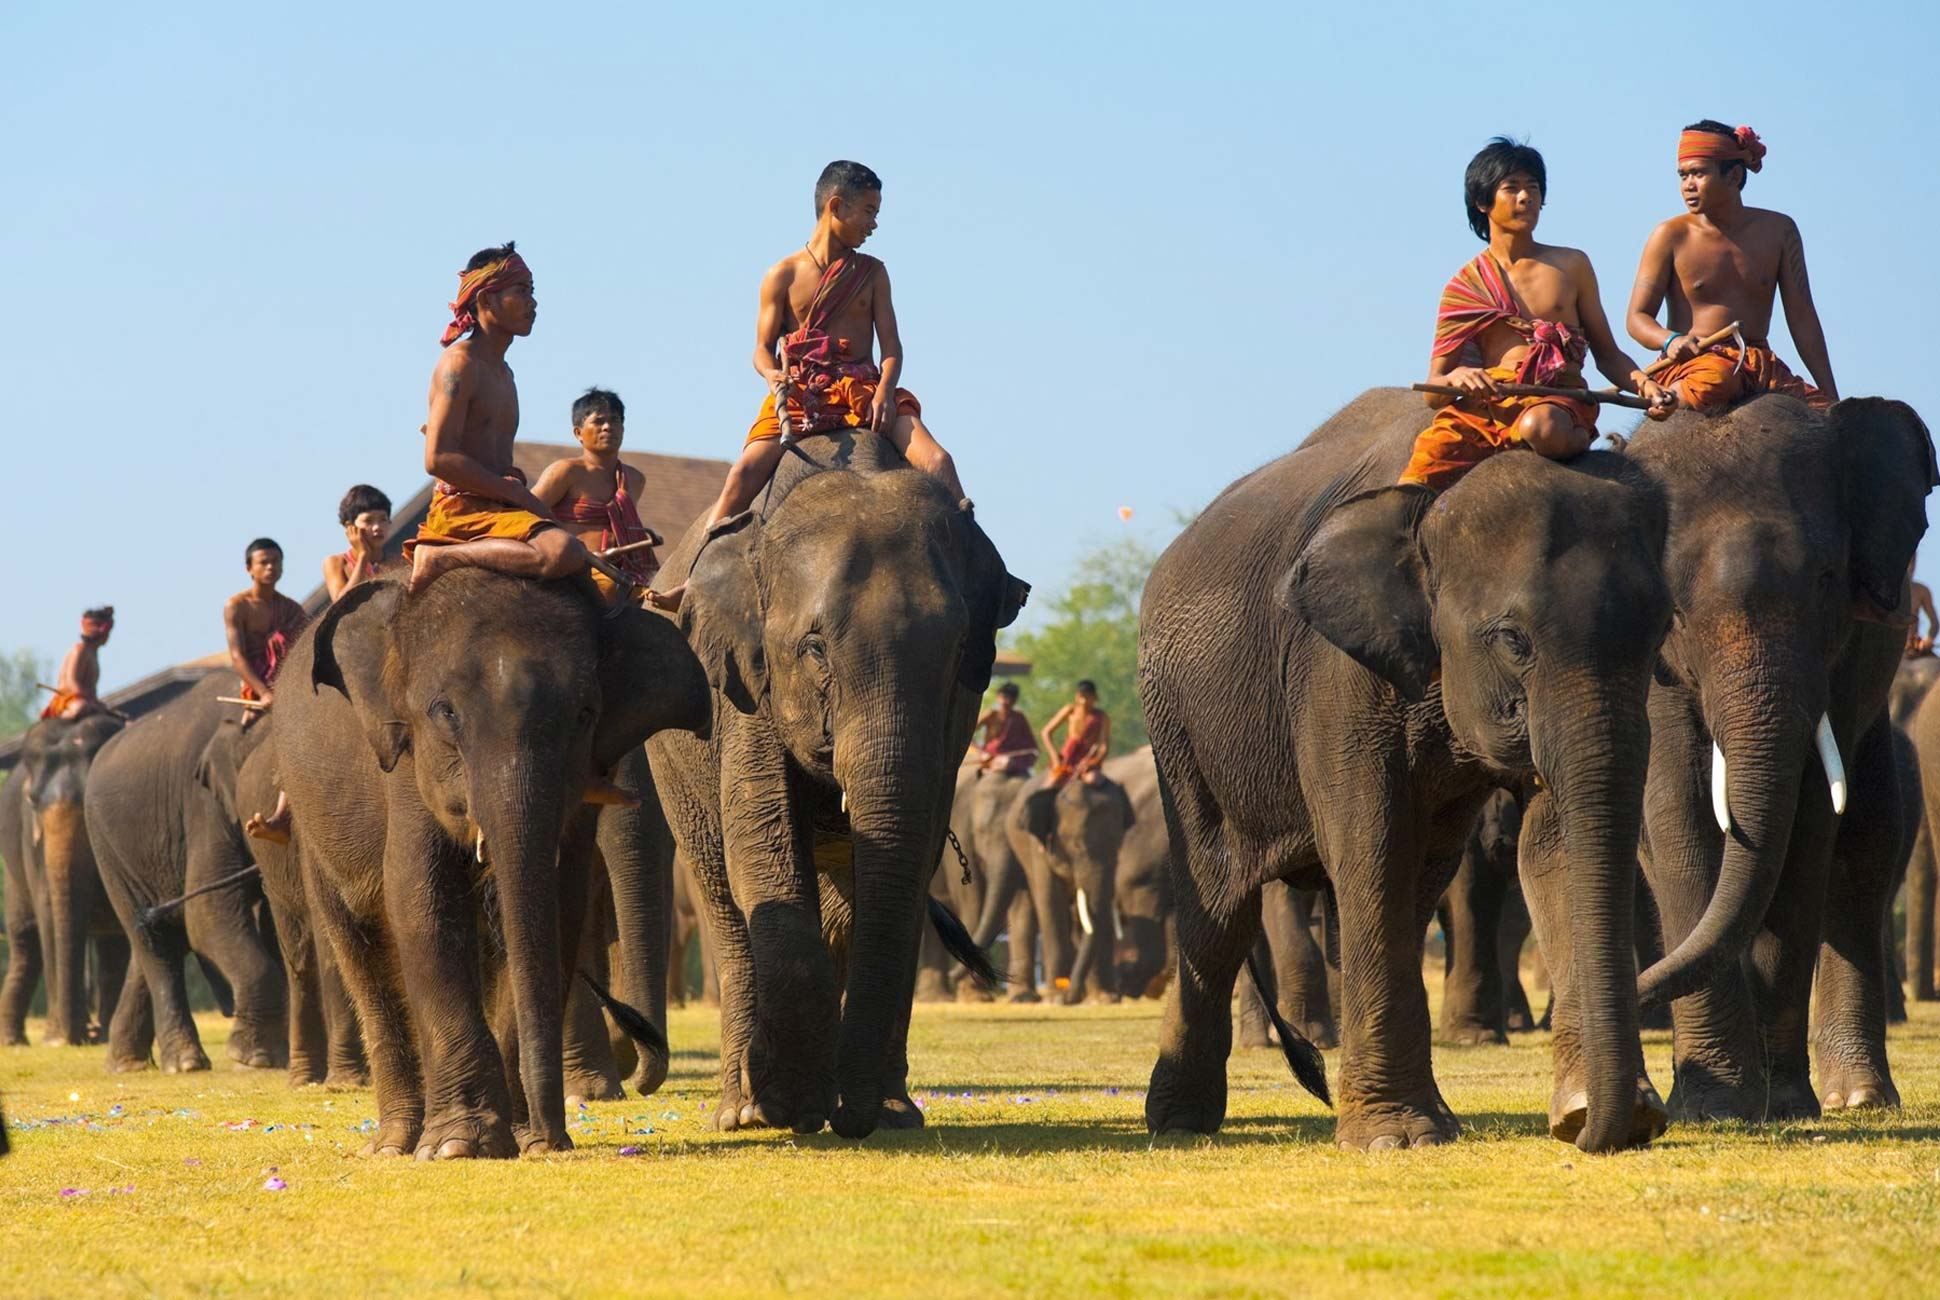 The excitement of Surin Elephant Festival